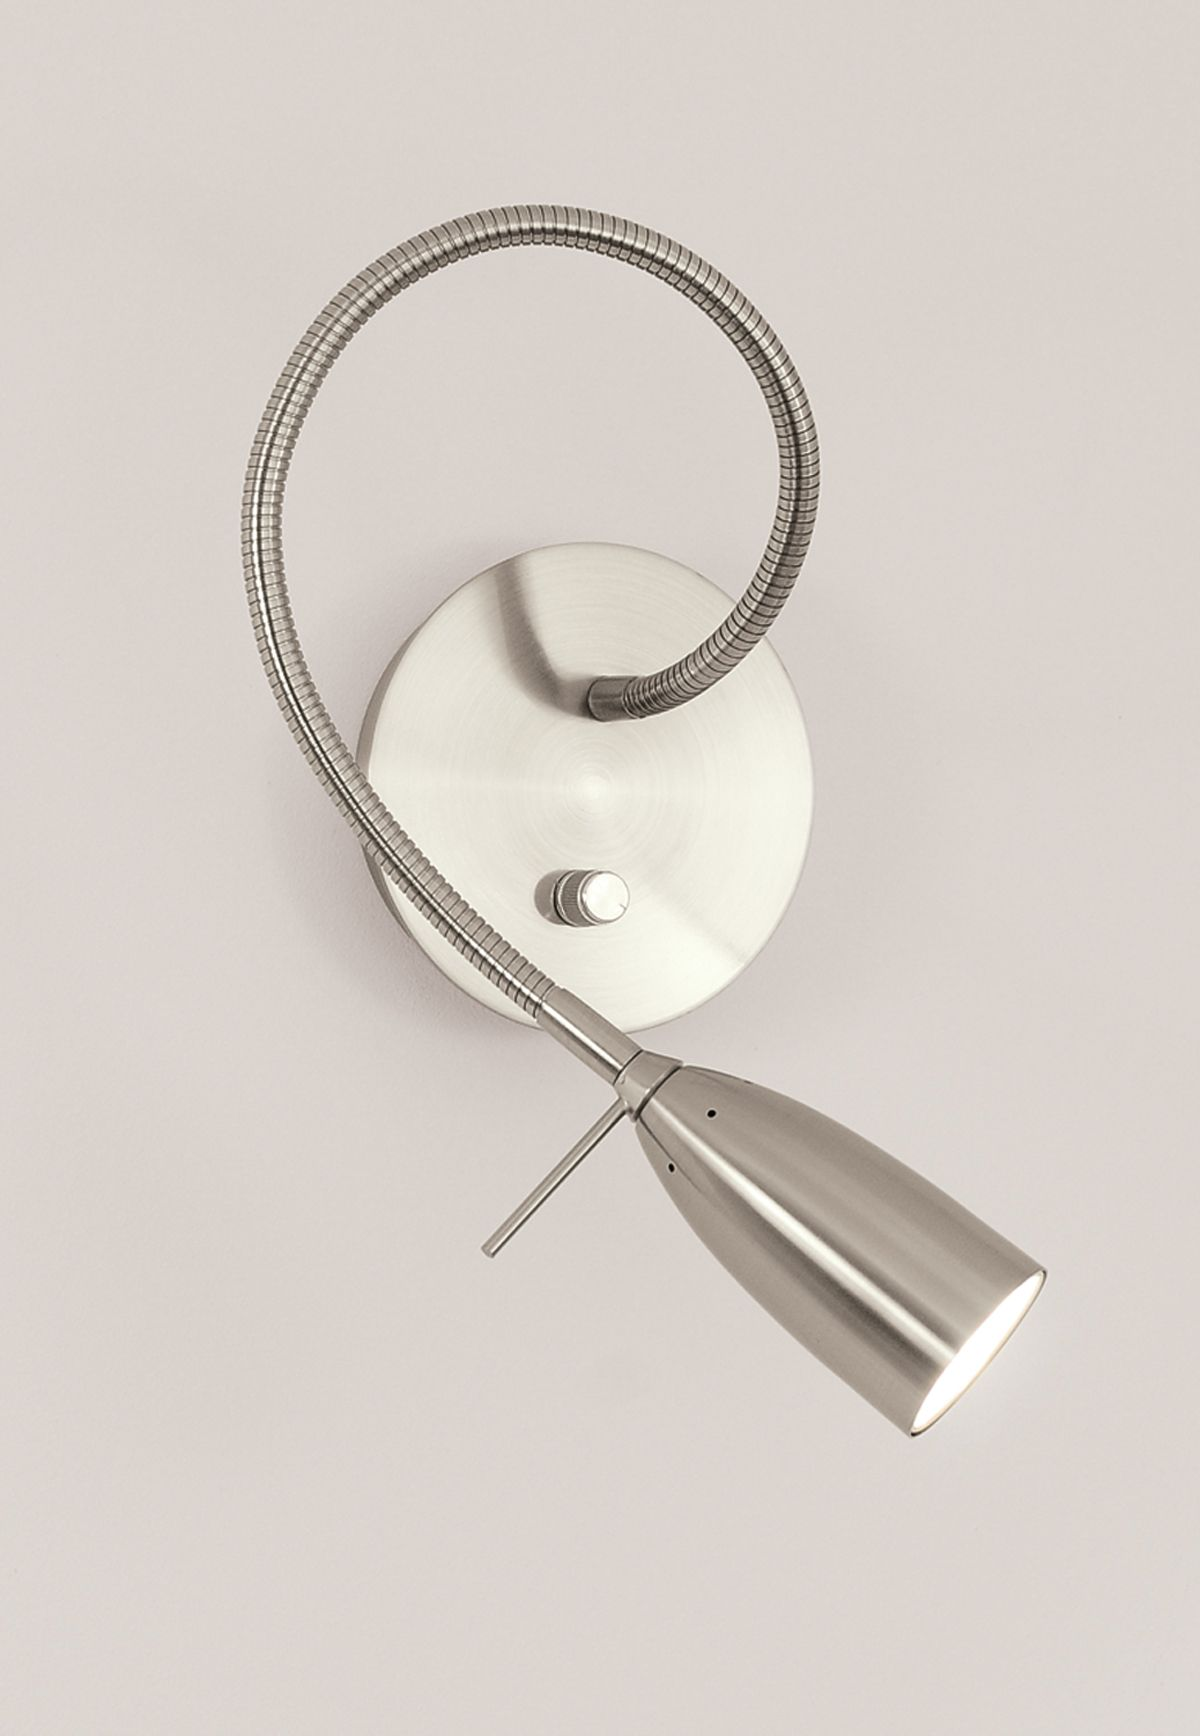 Ca not find - maybe discontinued? Micro Wall Reading Lamp http://www.edgelighting.com/products ...